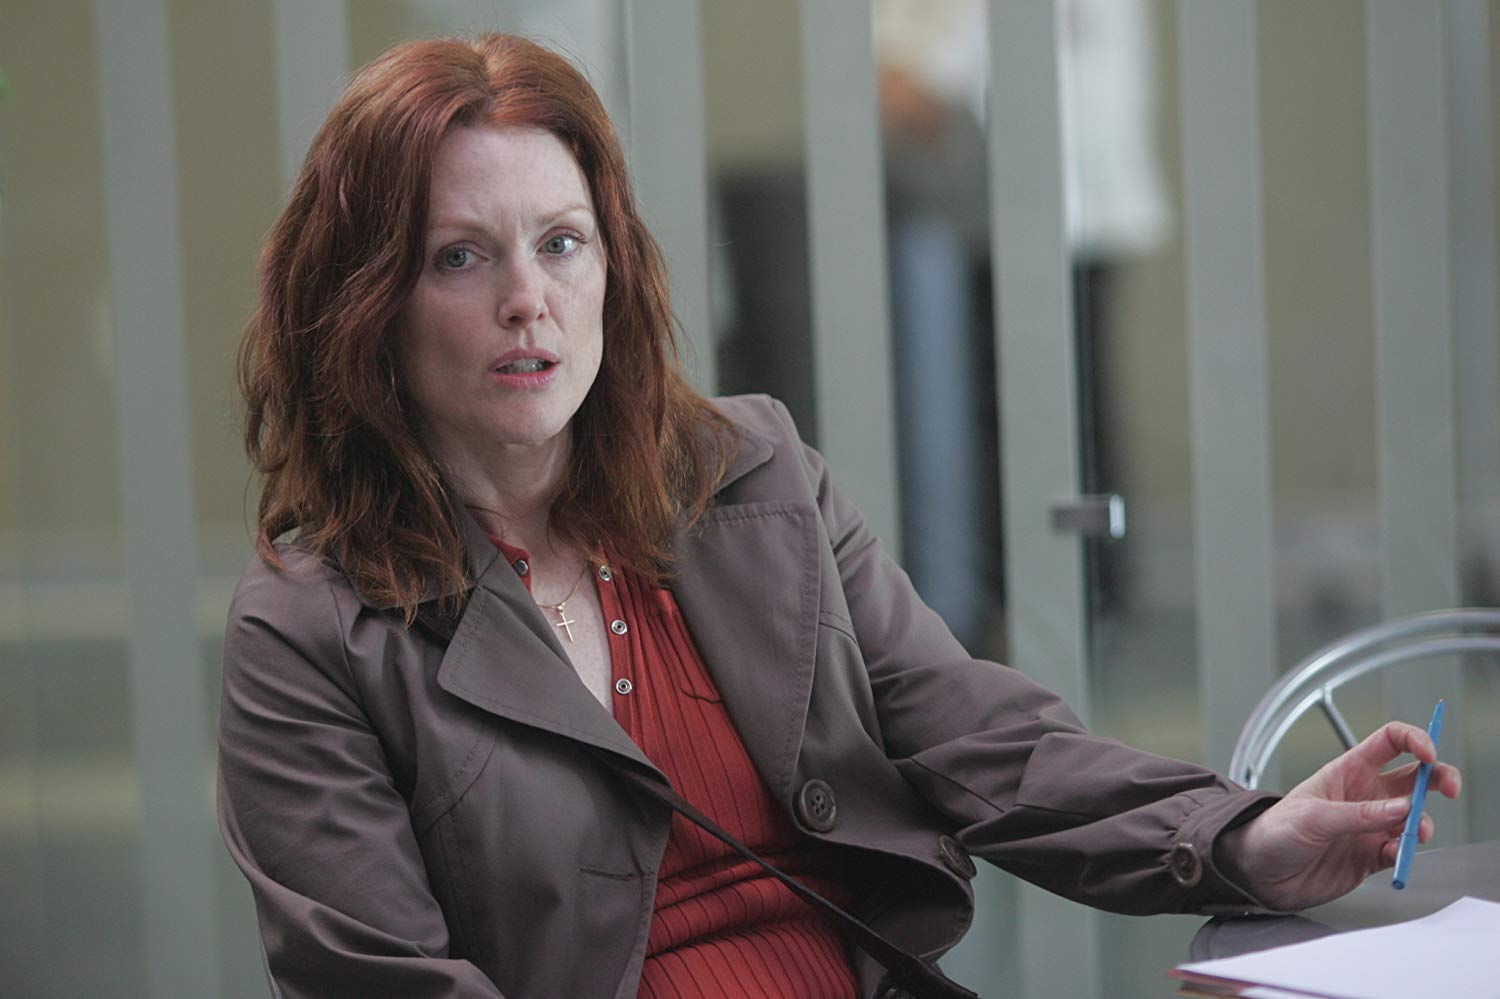 Investigating psychologist Julianne Moore in Shelter (2010)